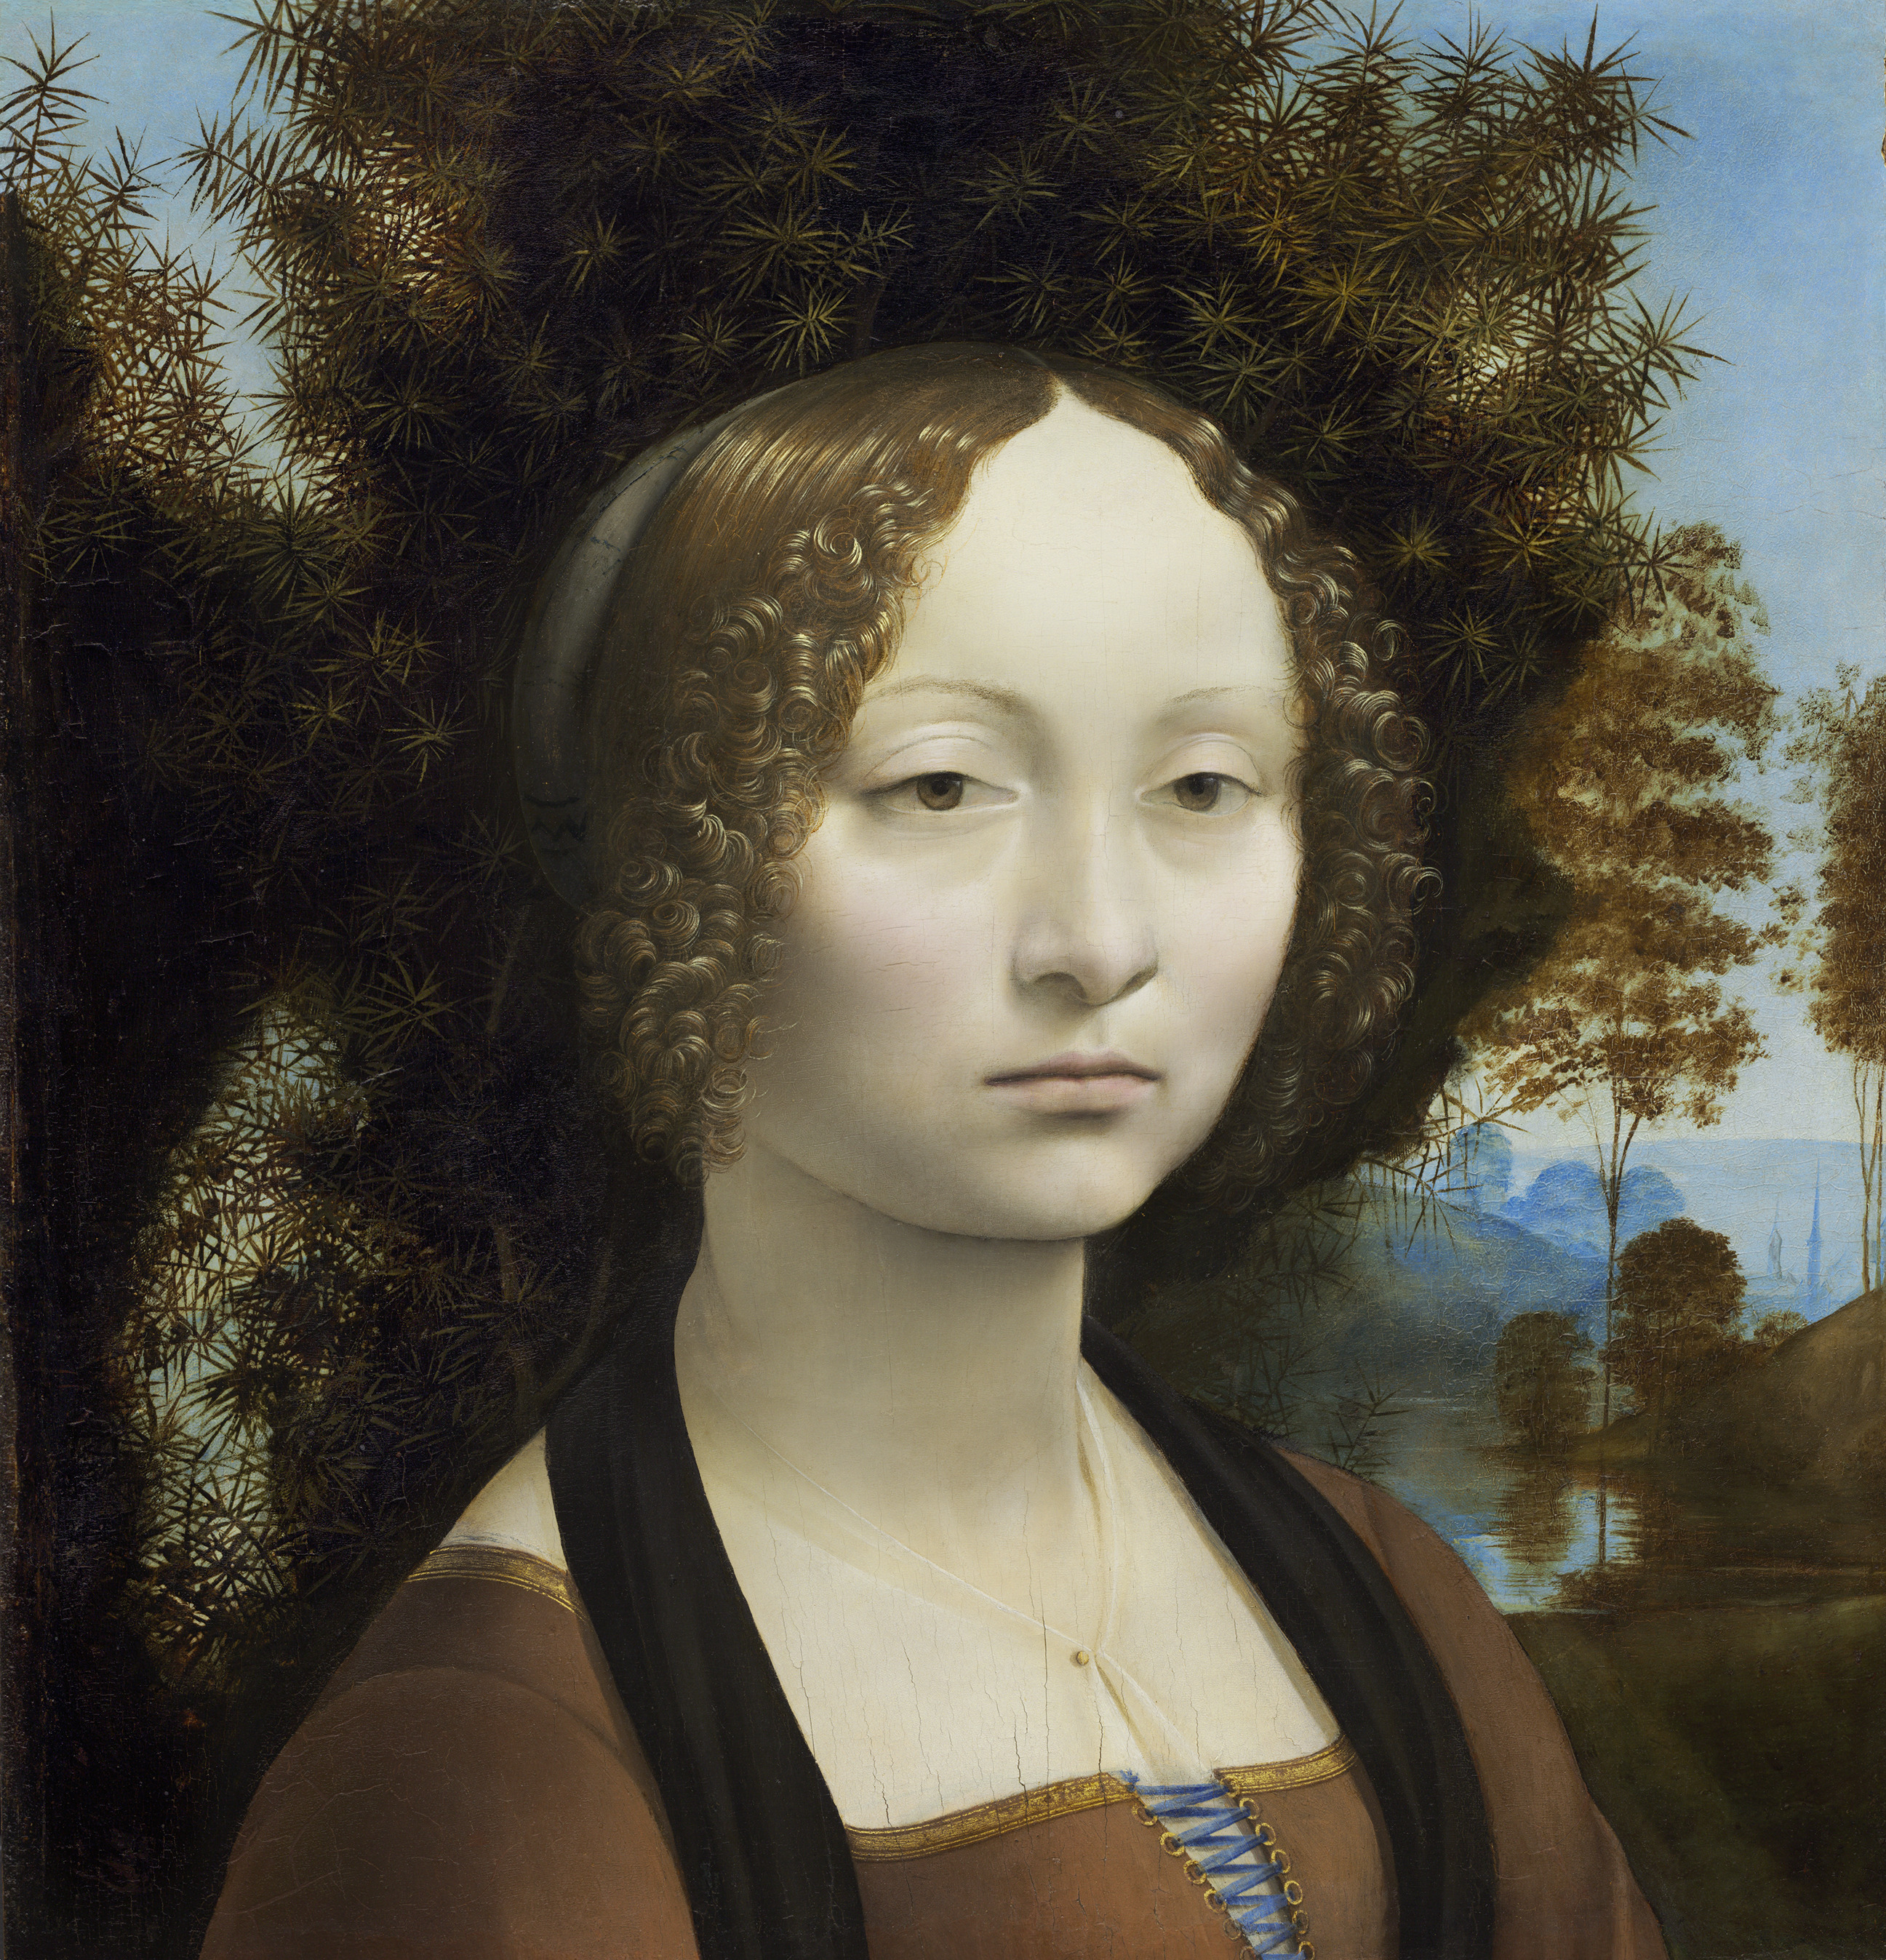 Leonardo da Vinci, Ginevra de' Benci, c. 1474/1478, oil on panel, Ailsa Mellon Bruce Fund